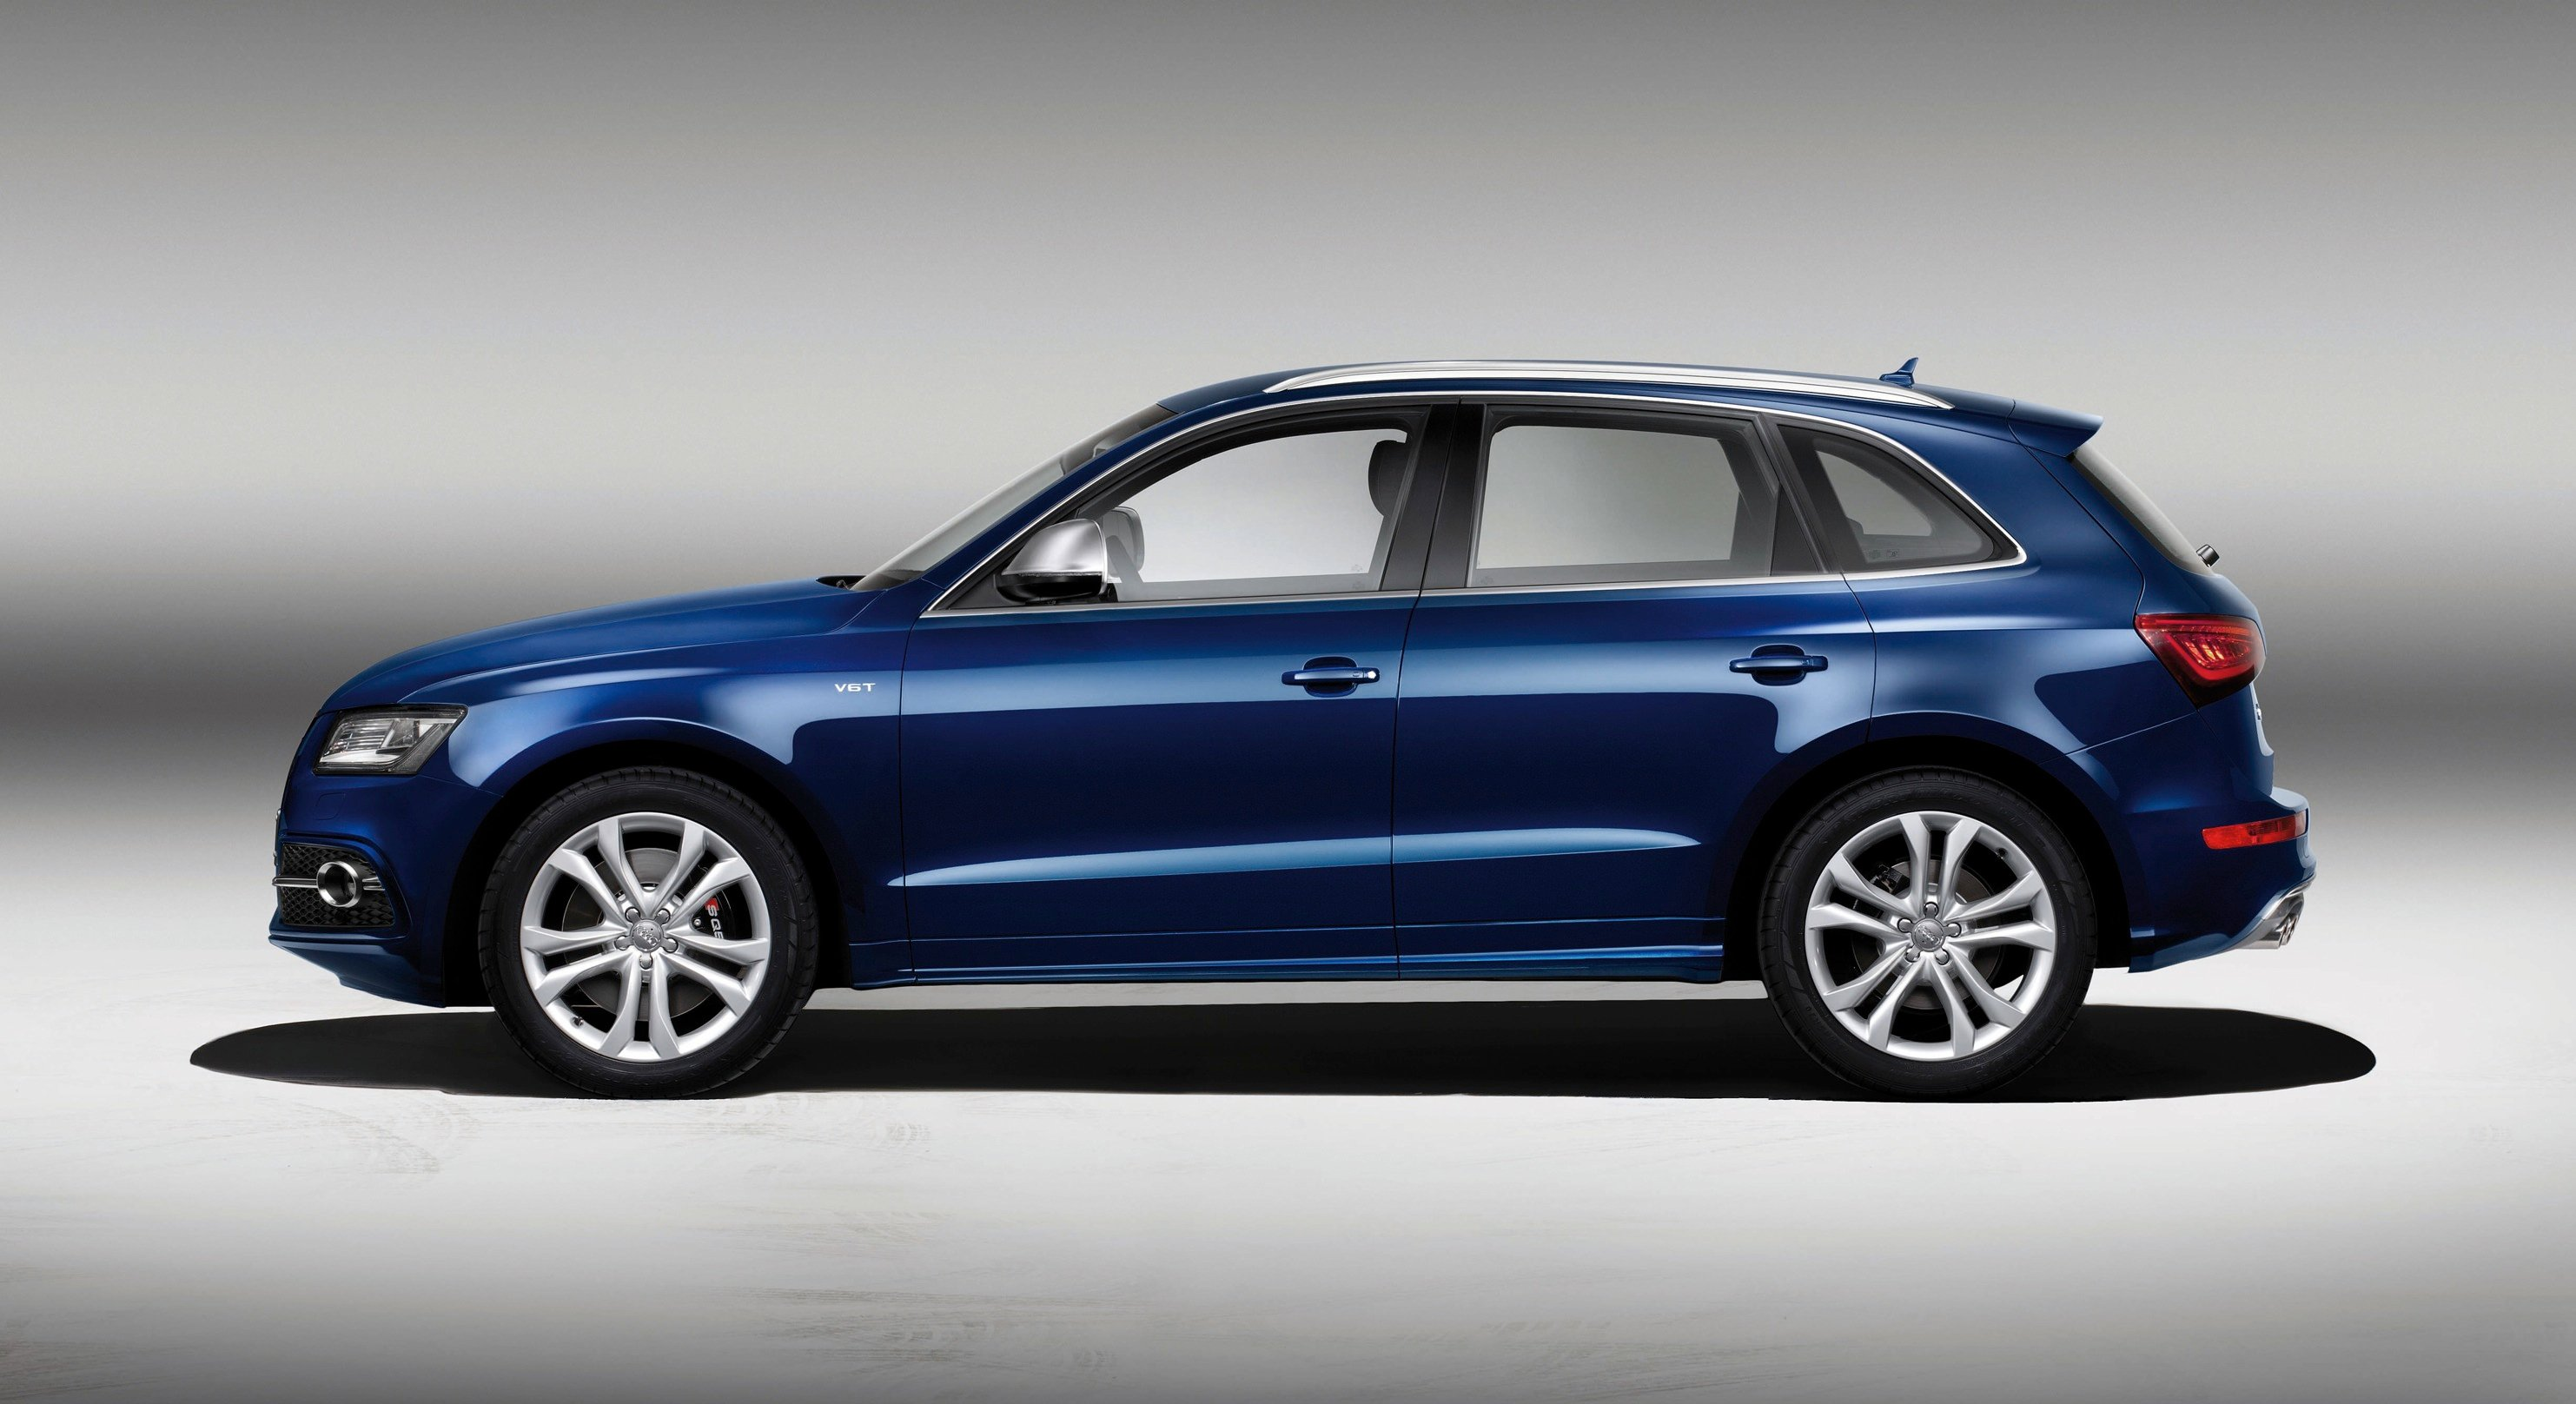 Audi Sq5 Tdi New Performance Suv Revealed Photos